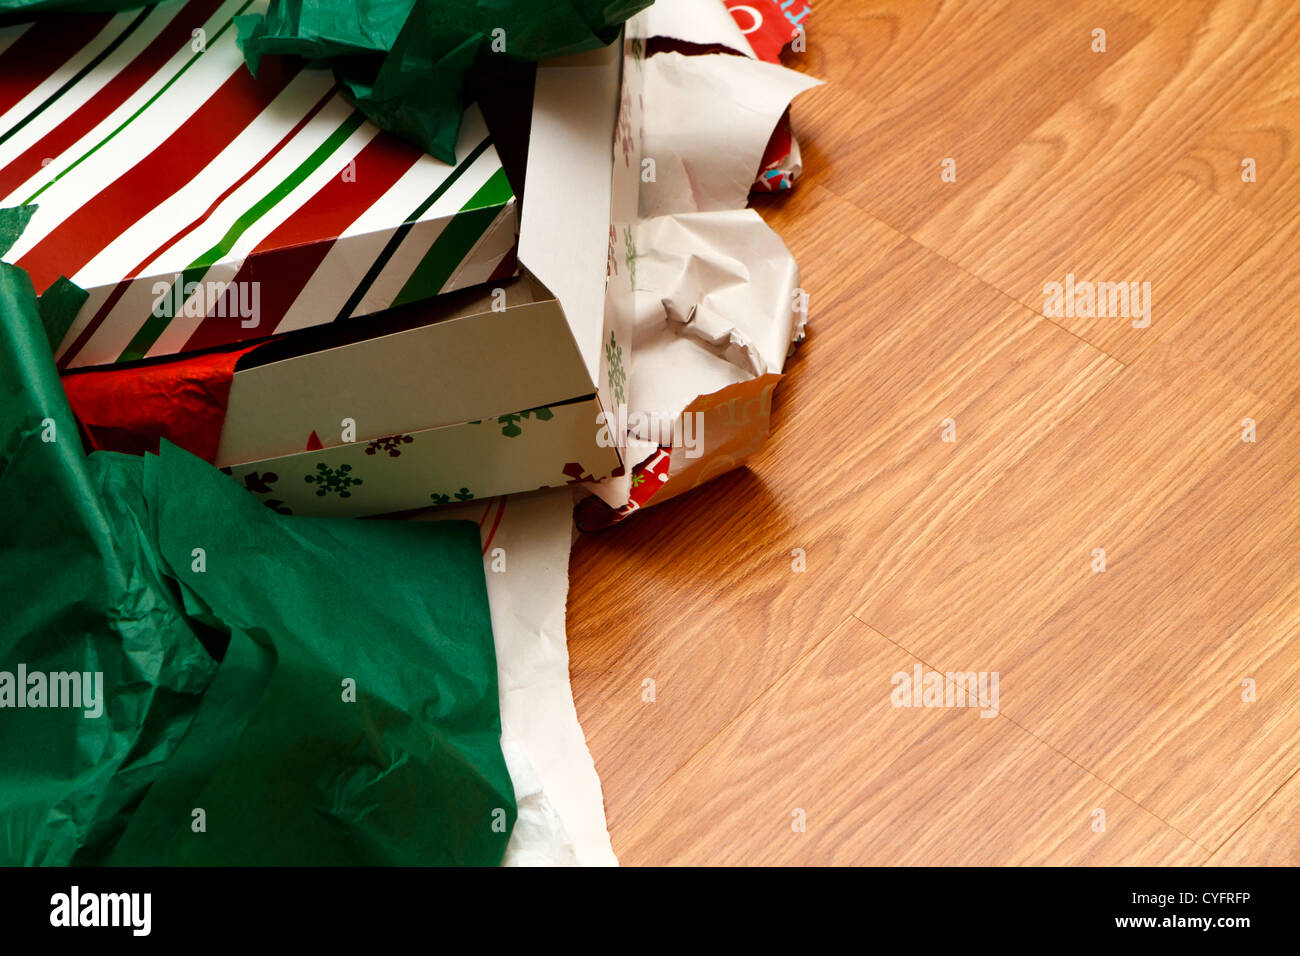 A pile of unwrapped gift boxes and ripped wrapping paper on the floor at Christmas time. Copy space was left on - Stock Image